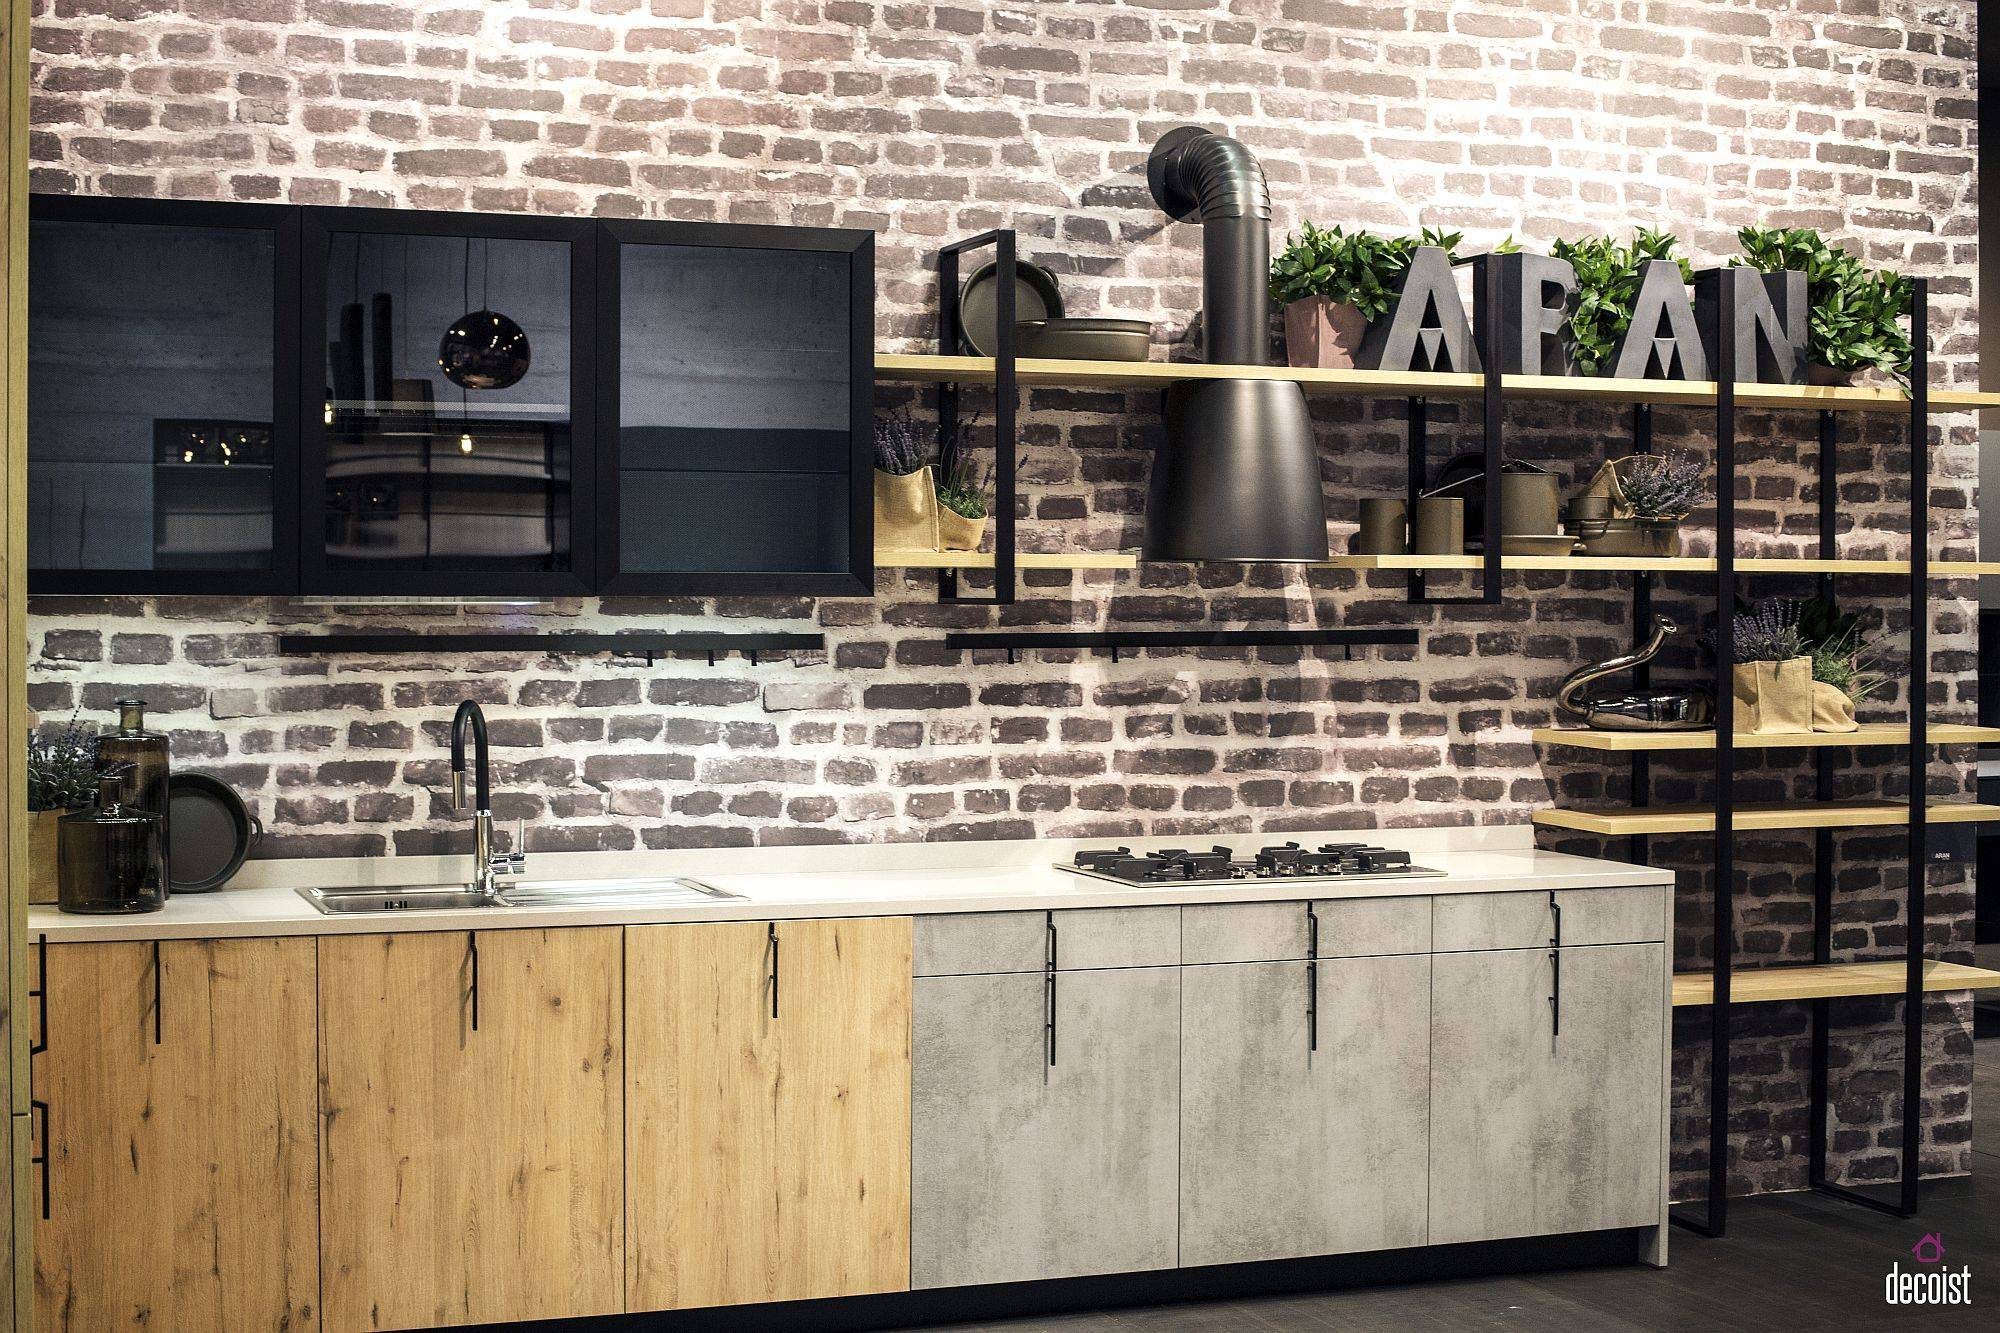 Industrial-style-single-wall-kitchen-places-functionality-above-form-77323